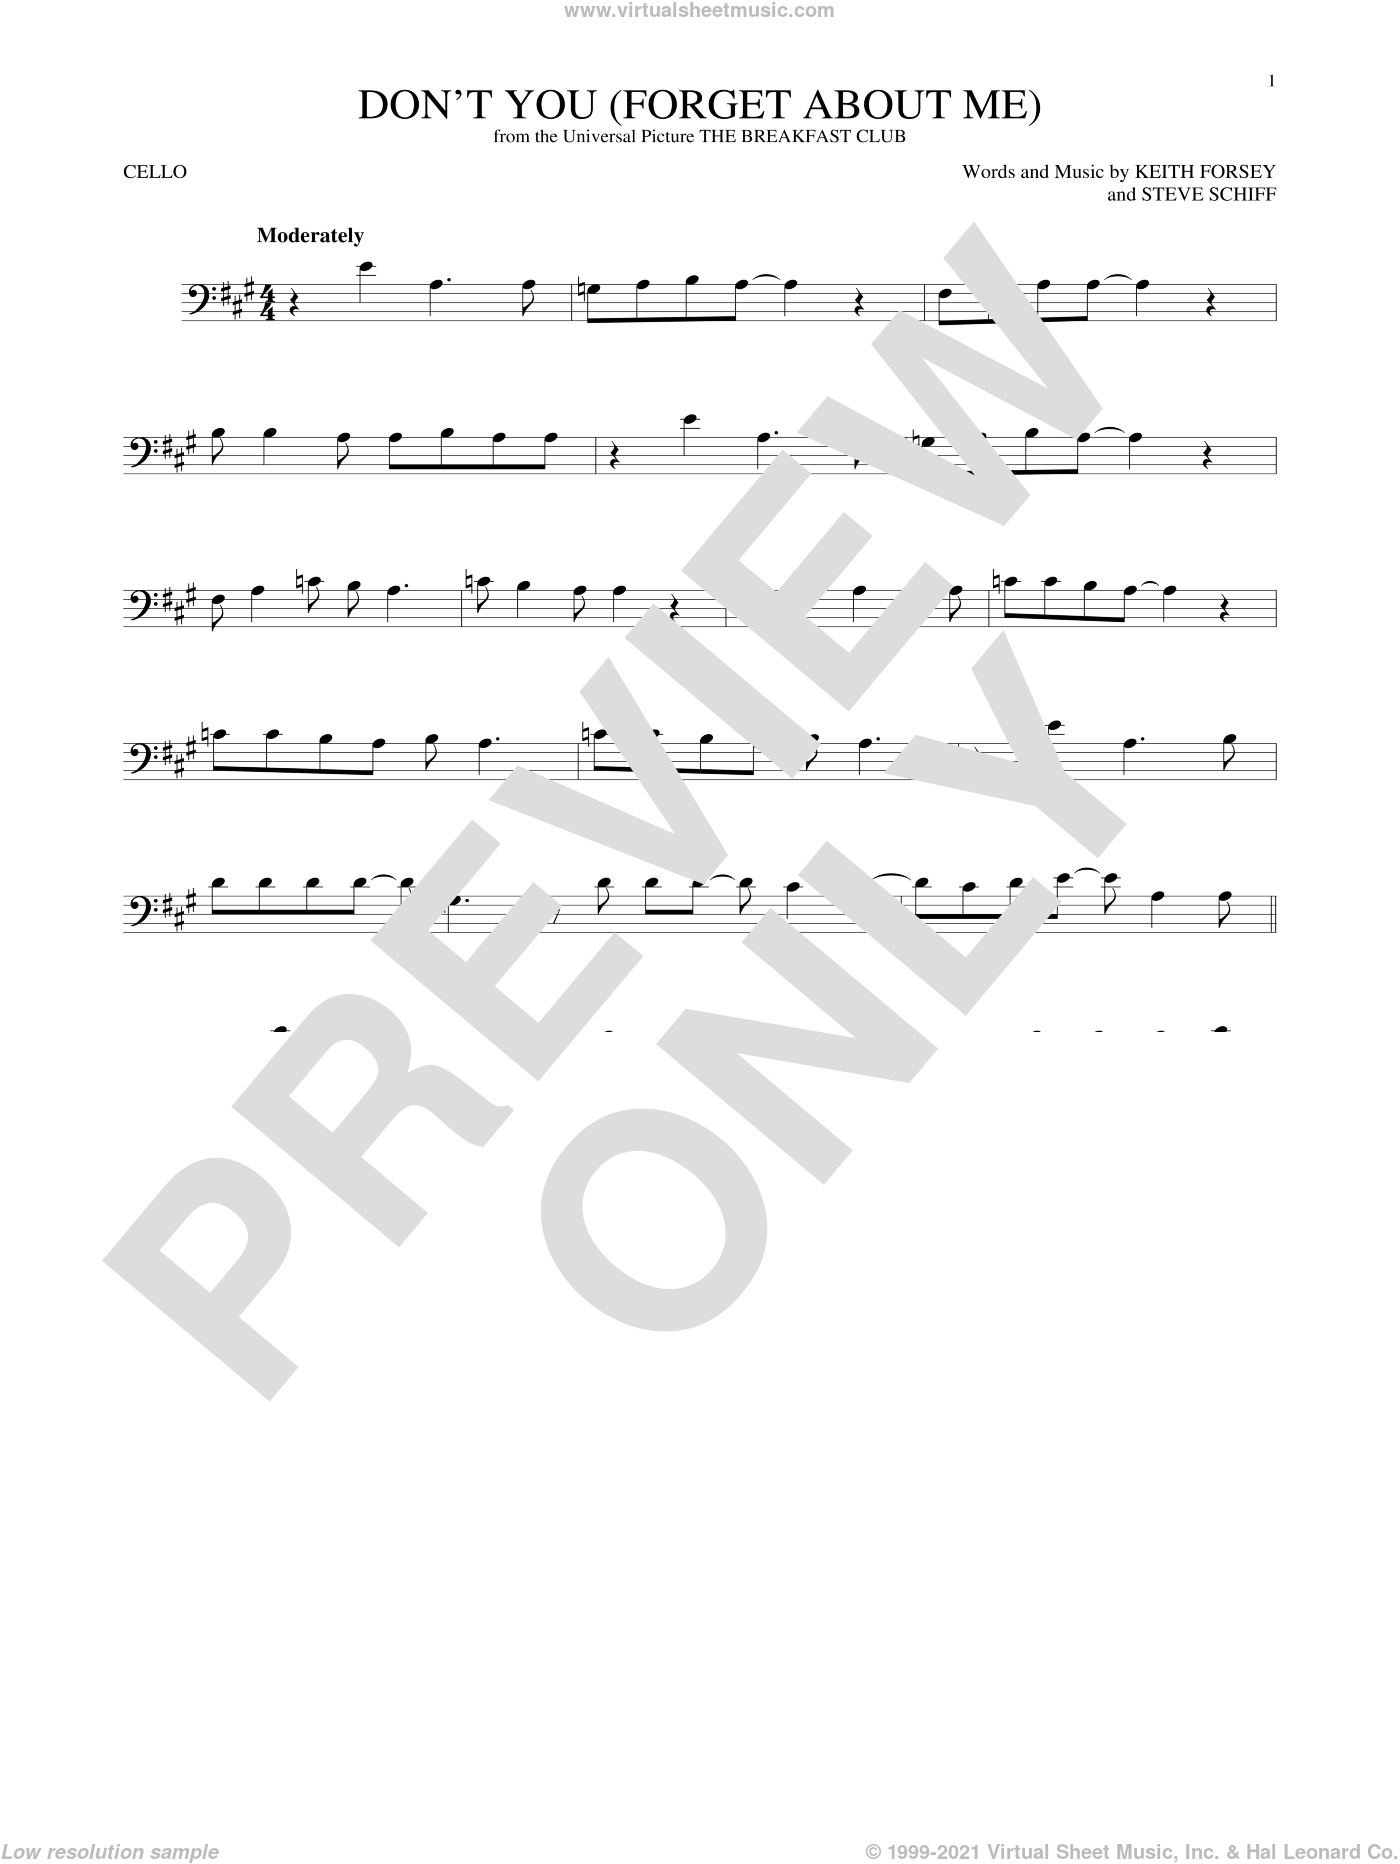 Don't You (Forget About Me) sheet music for cello solo by Steve Schiff